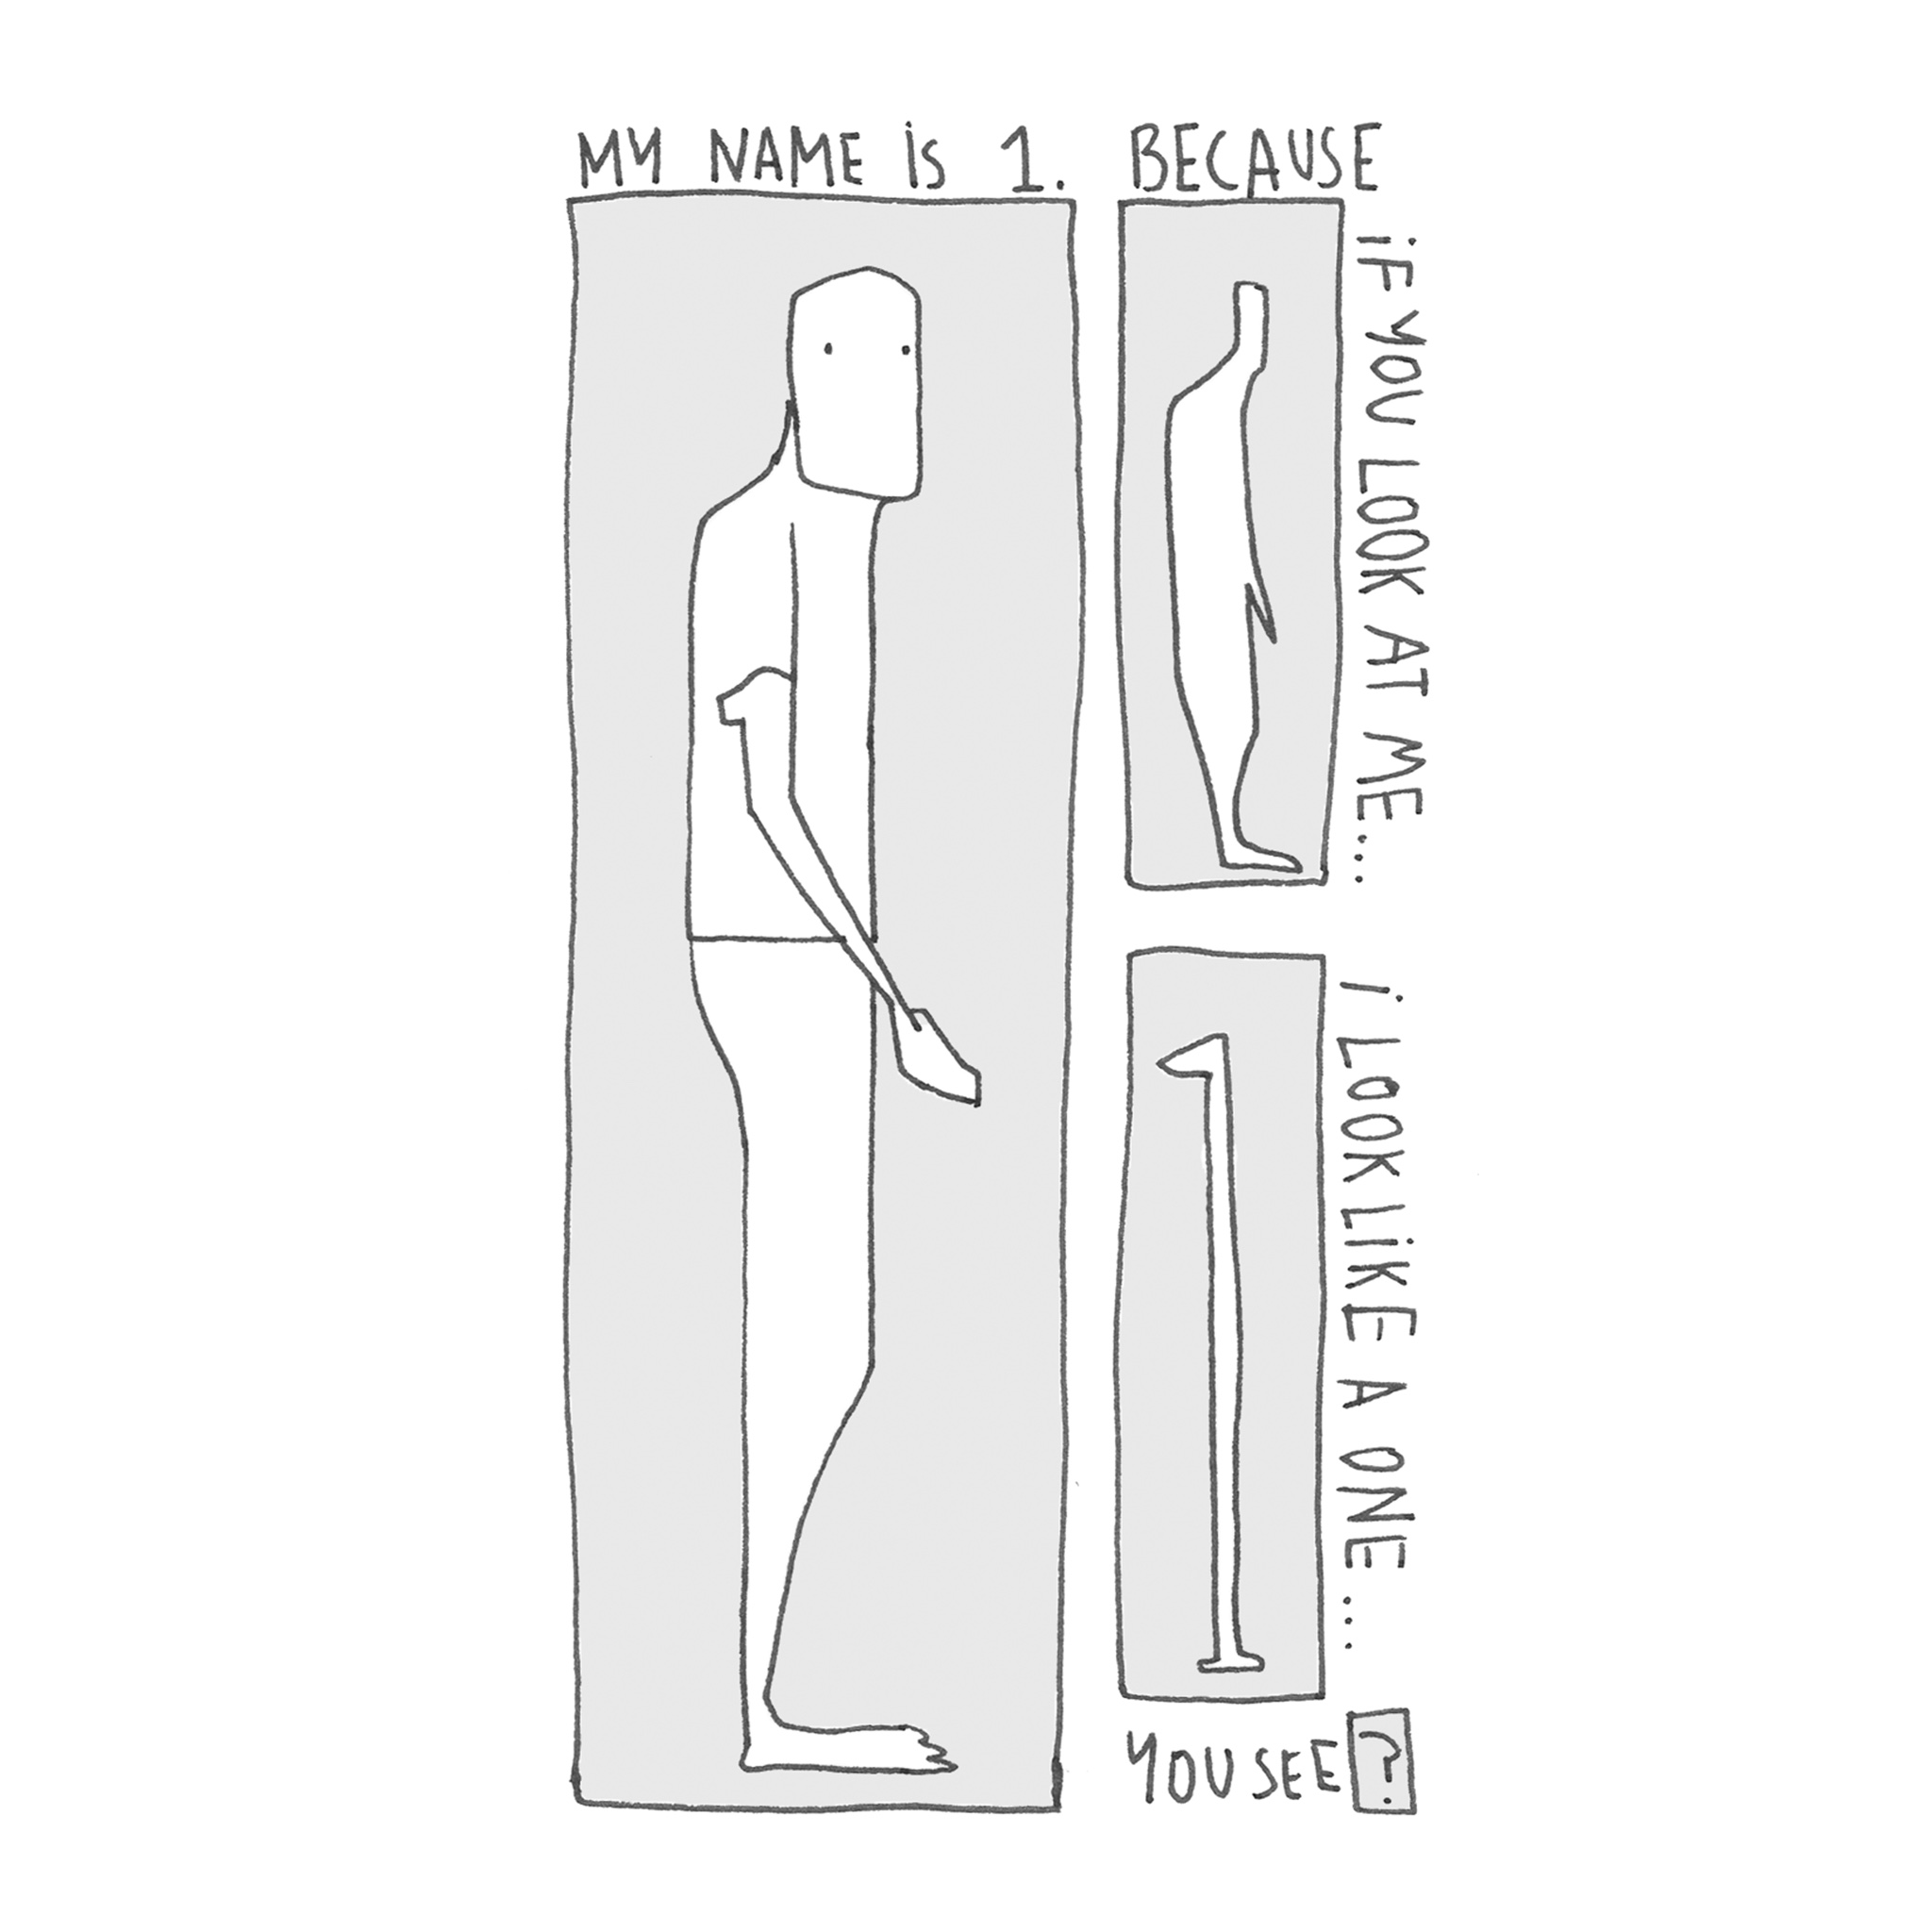 Silly comic about a 1 who wants to be a 2. comic by Rowena Sheehan